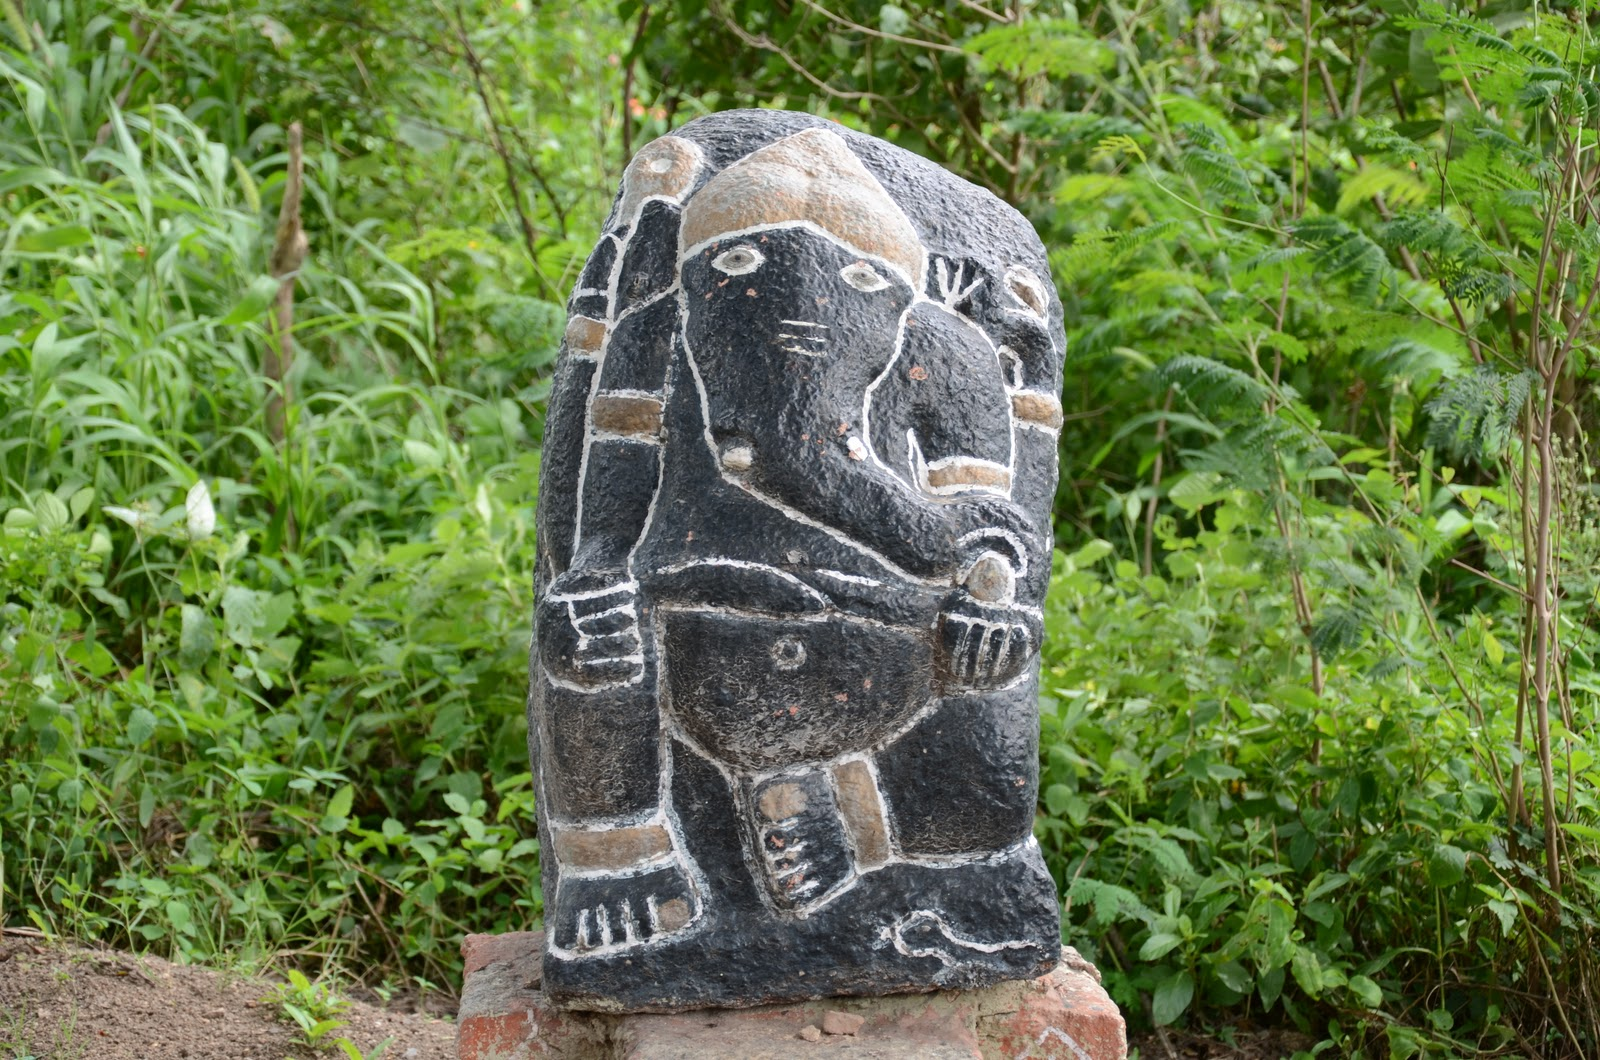 Old rare black idol of Ganesha found in fields near bhongir fort